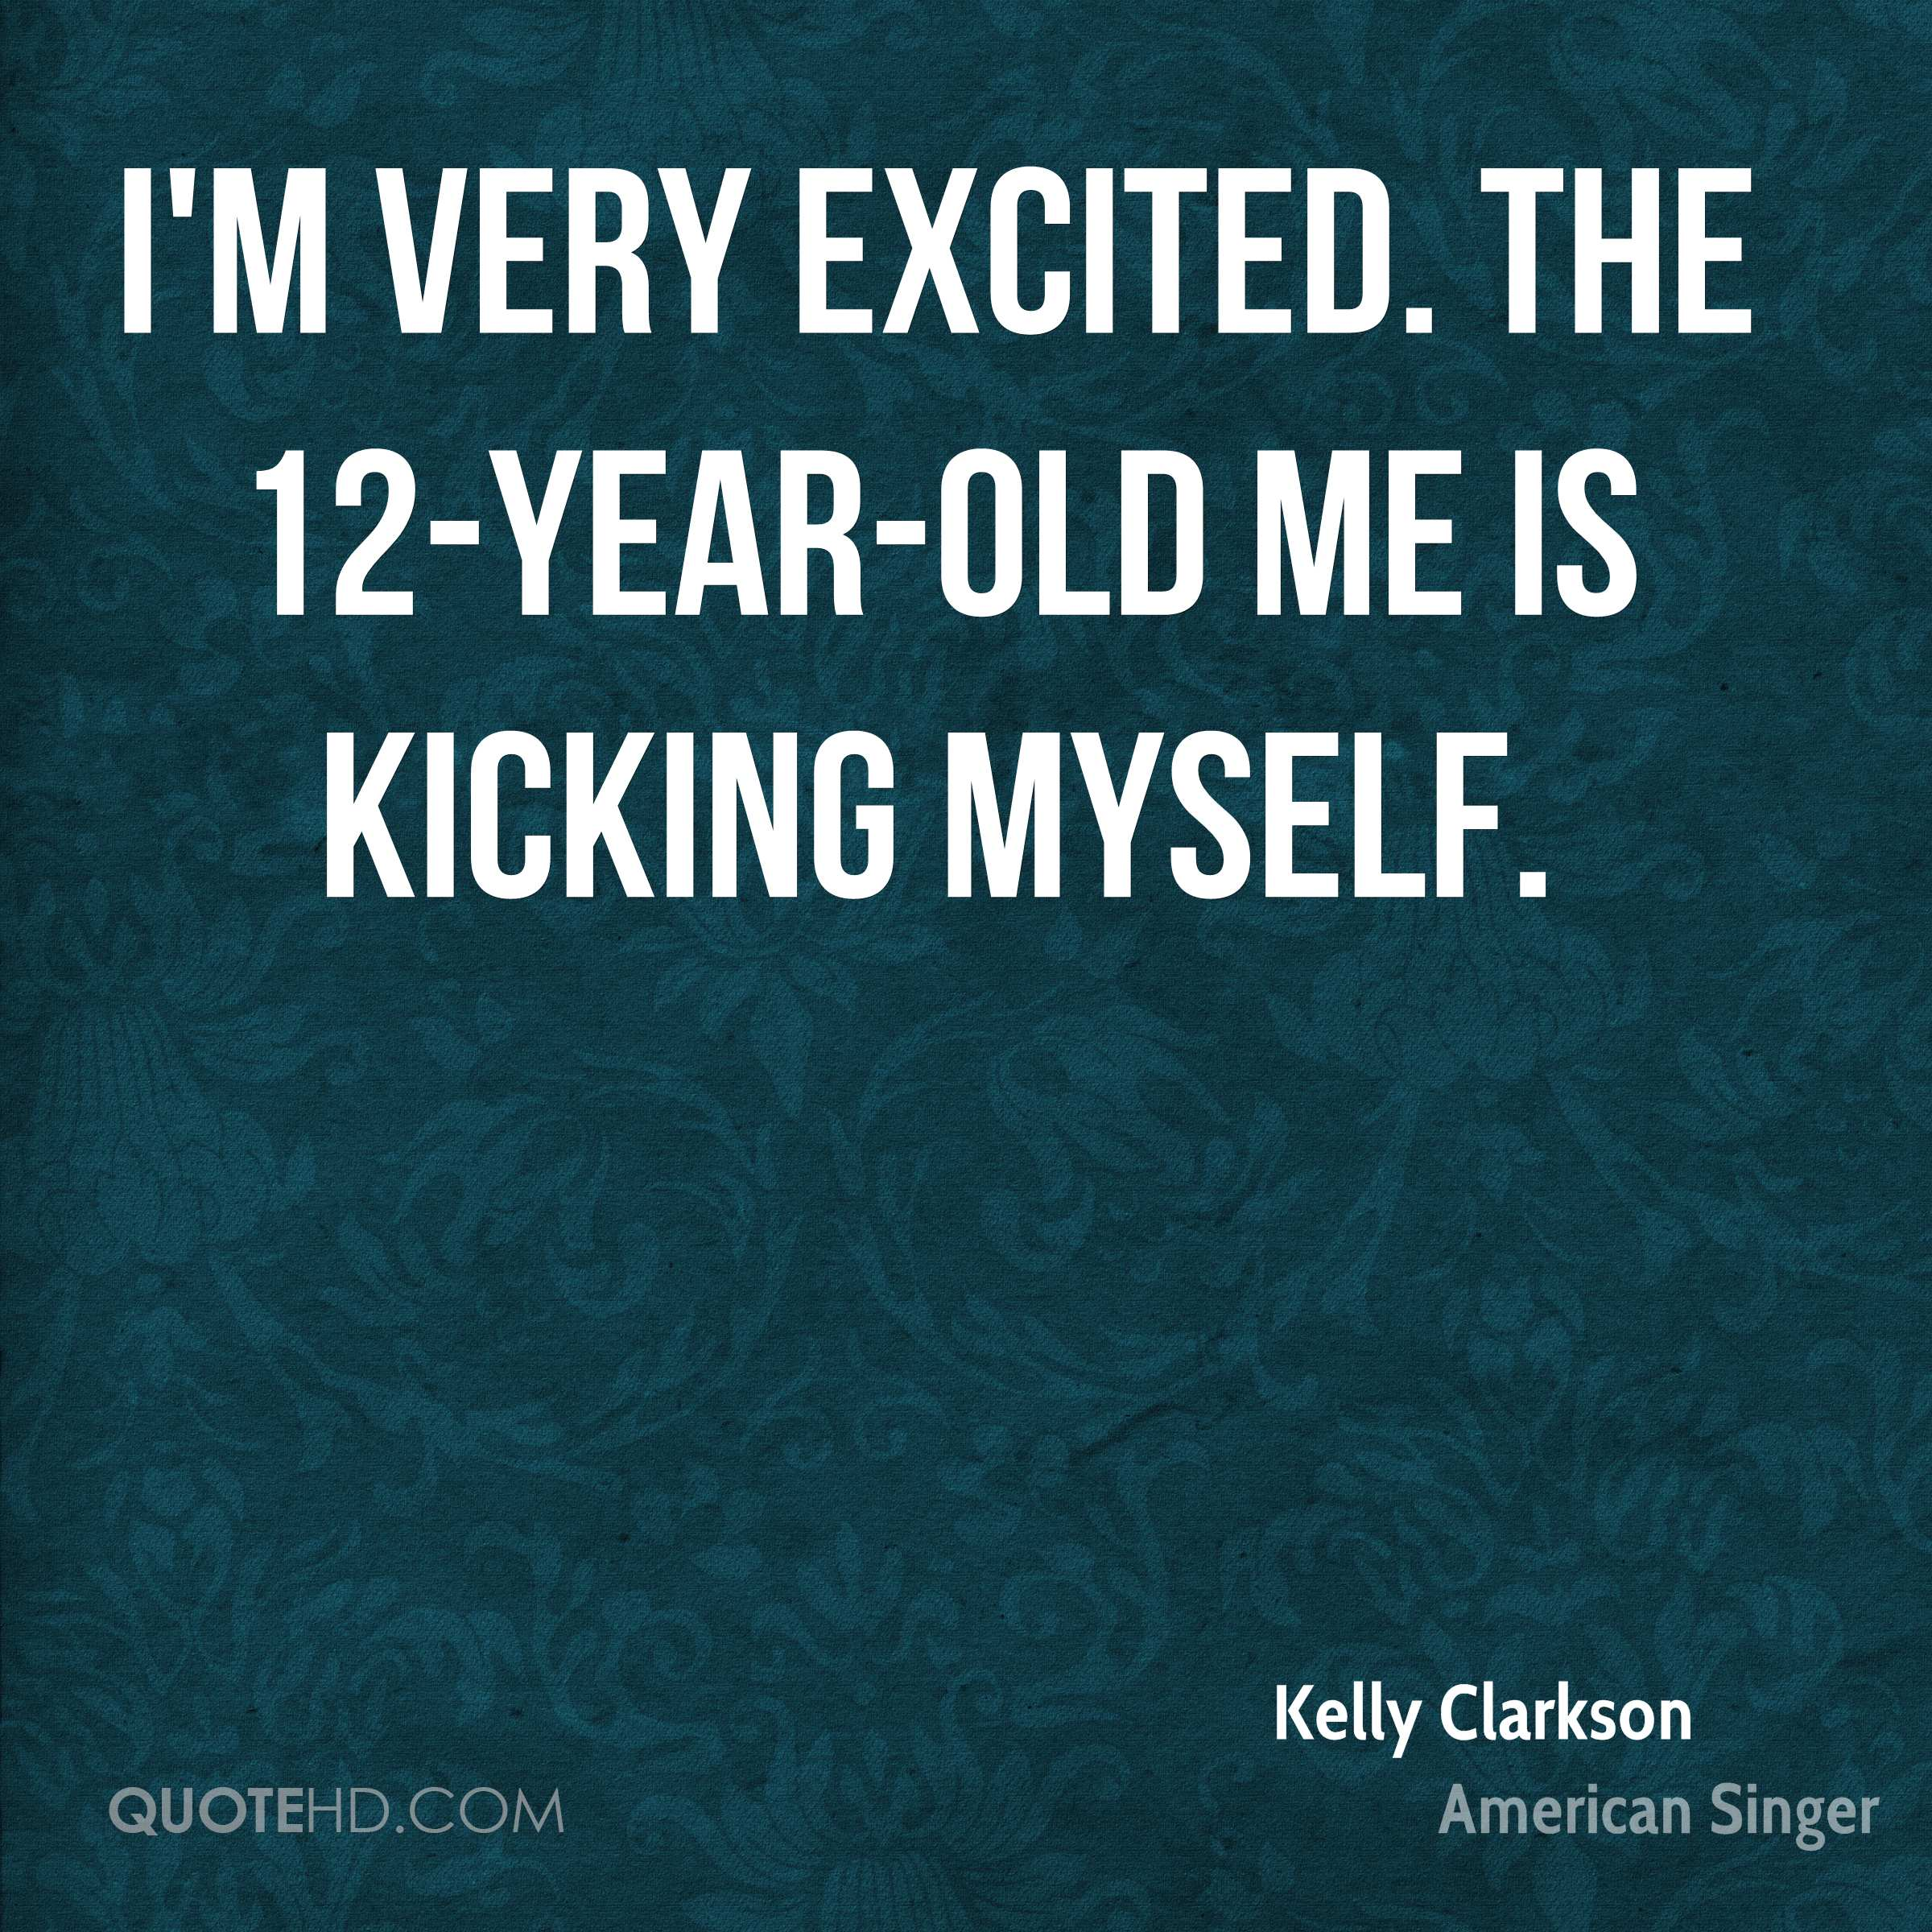 Kelly Clarkson Quotes | QuoteHD